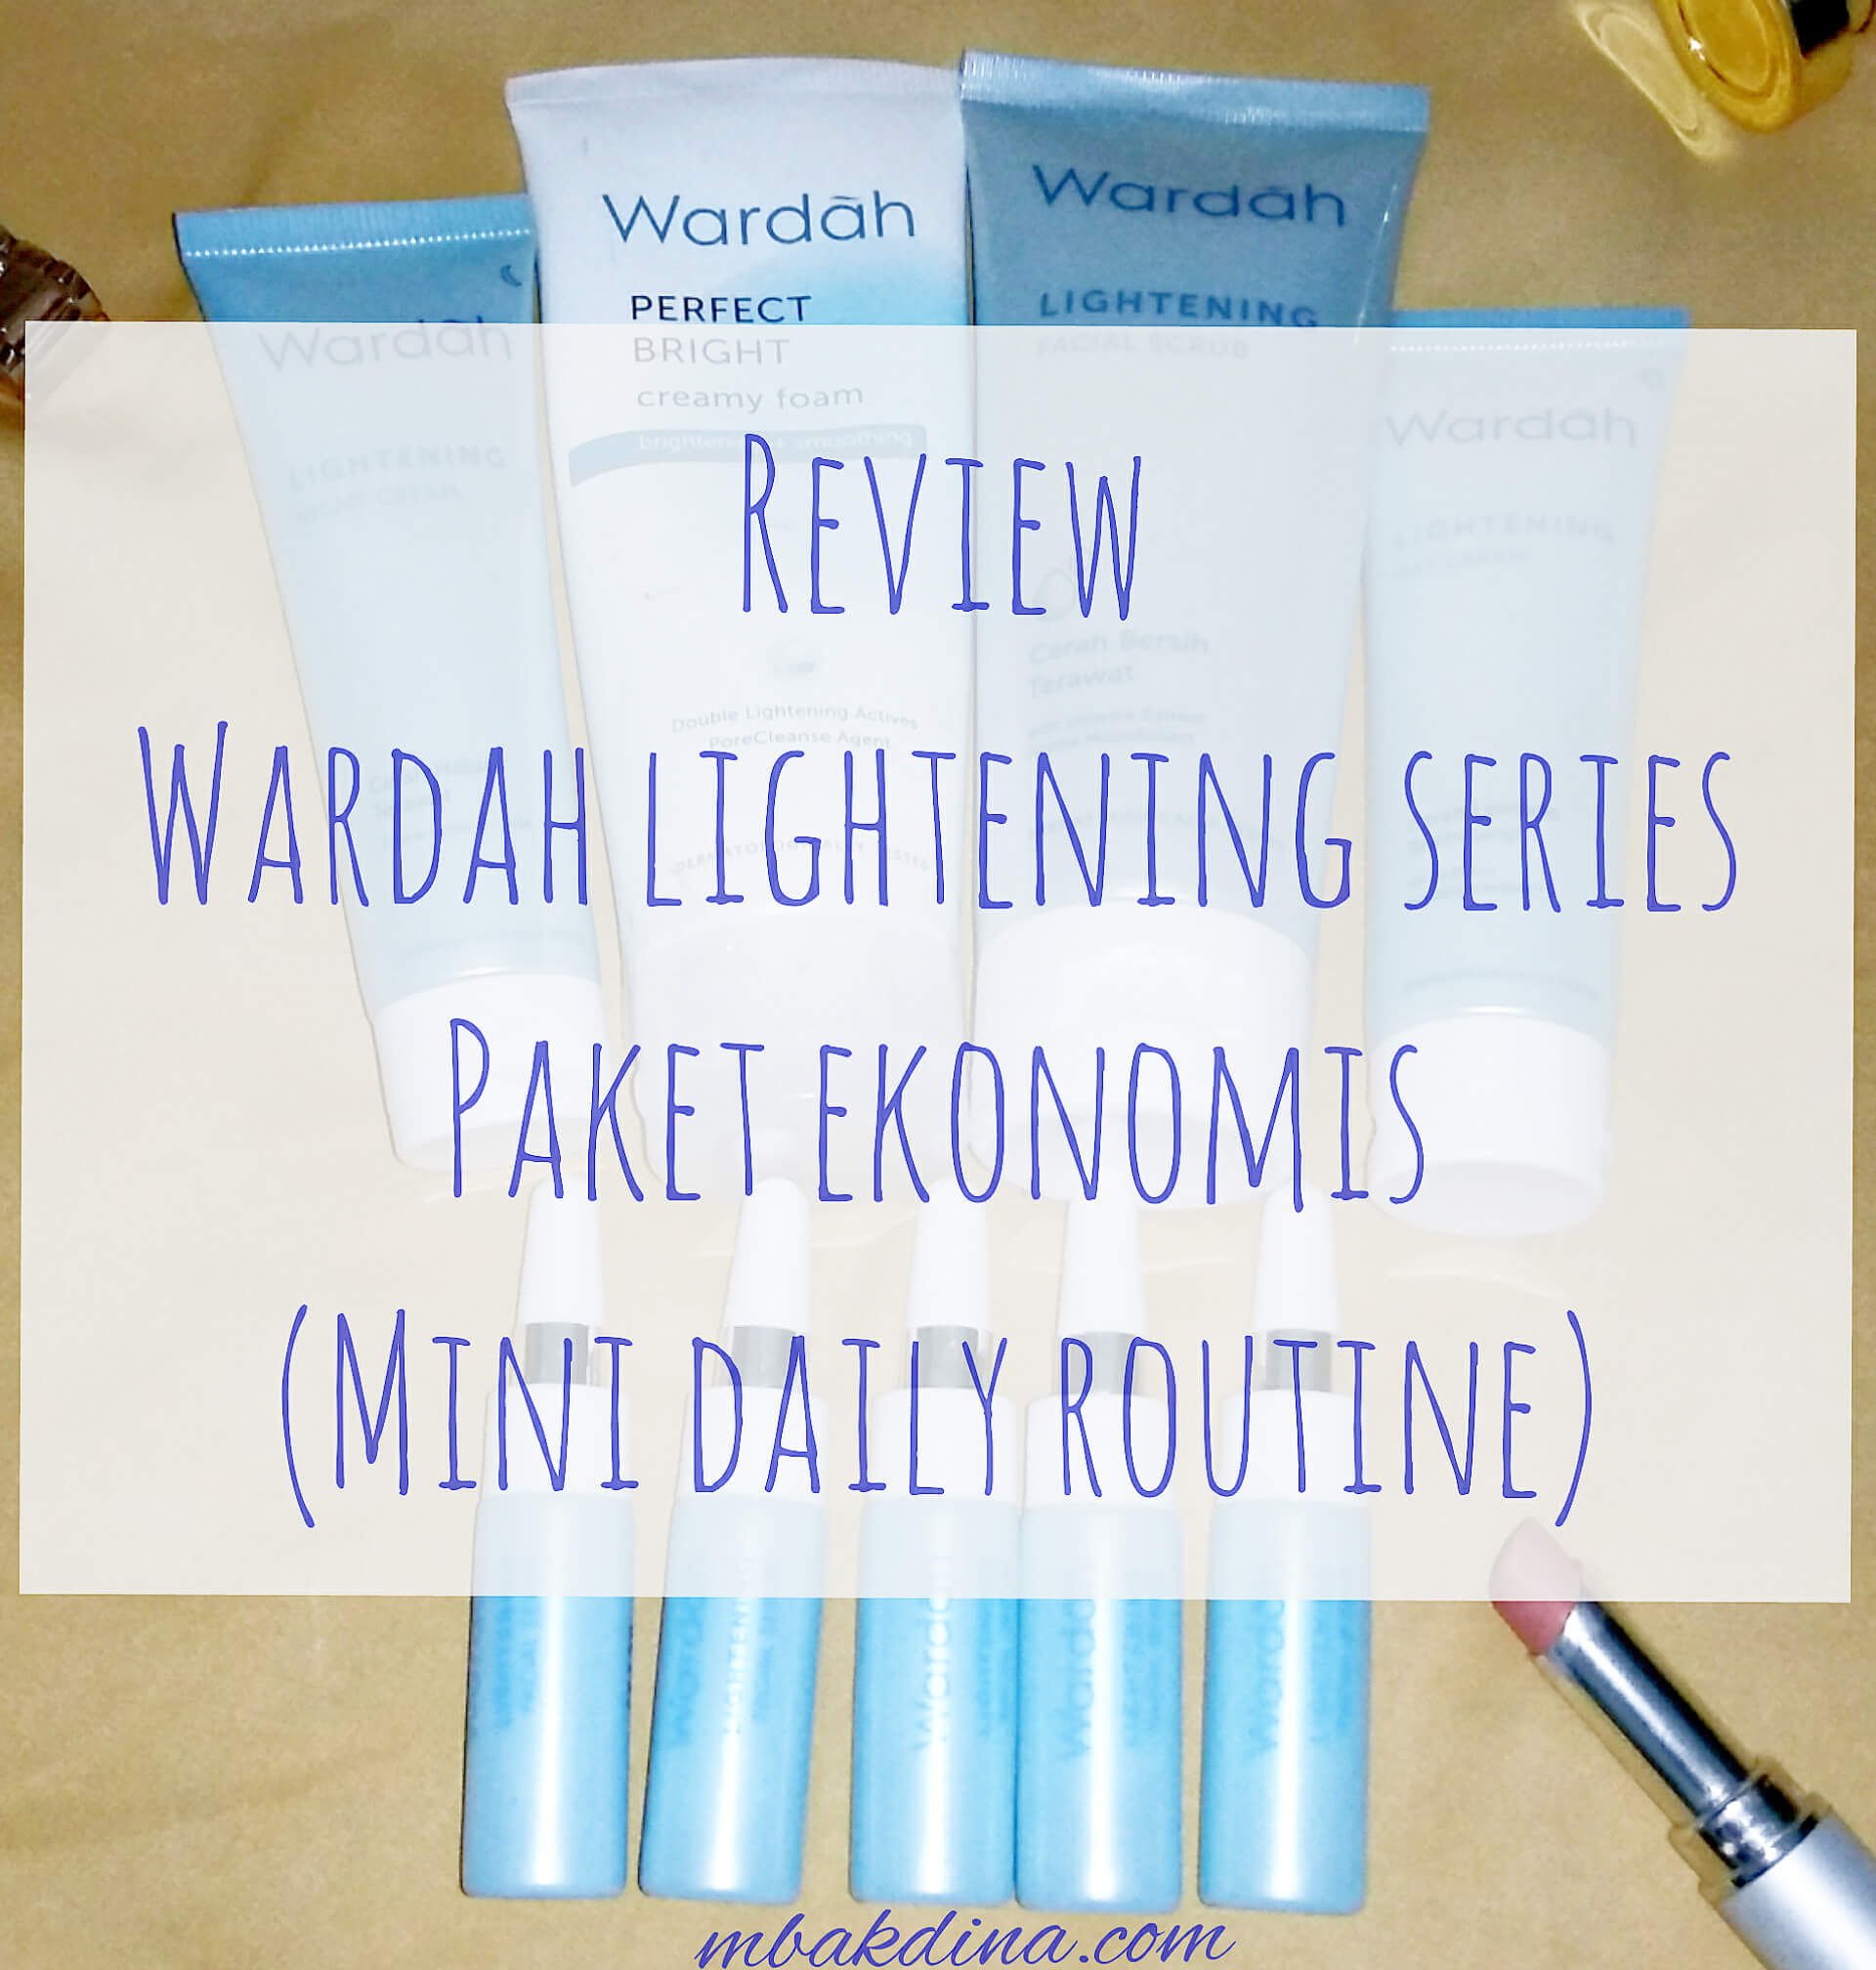 Review Wardah Lightening Series [Updated]